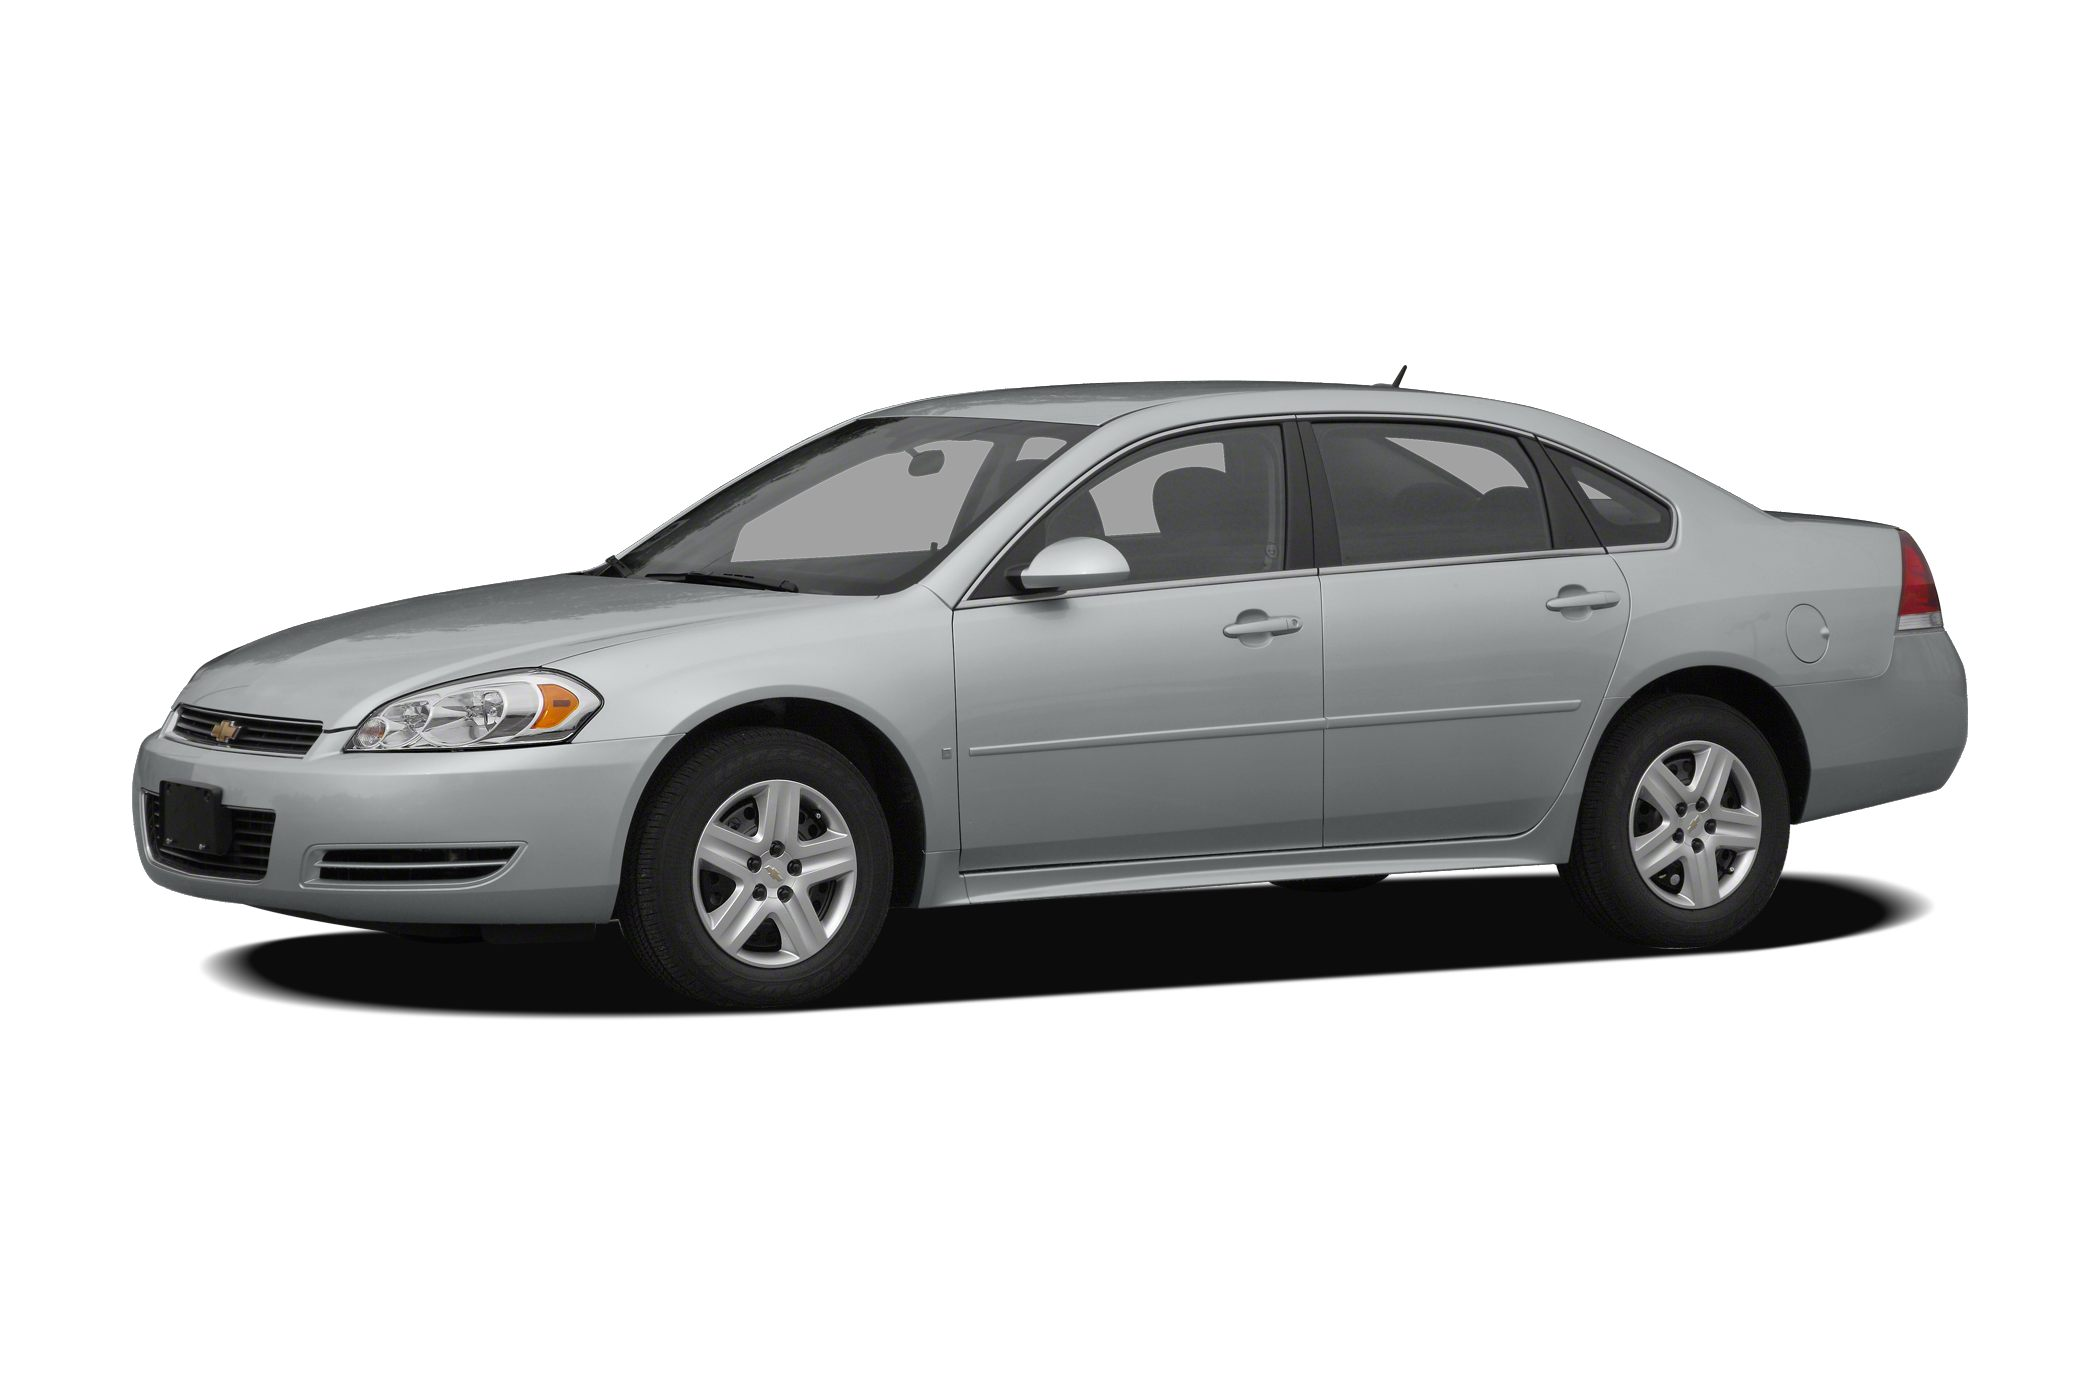 2011 Chevrolet Impala LS Sedan for sale in Midland for $9,999 with 115,123 miles